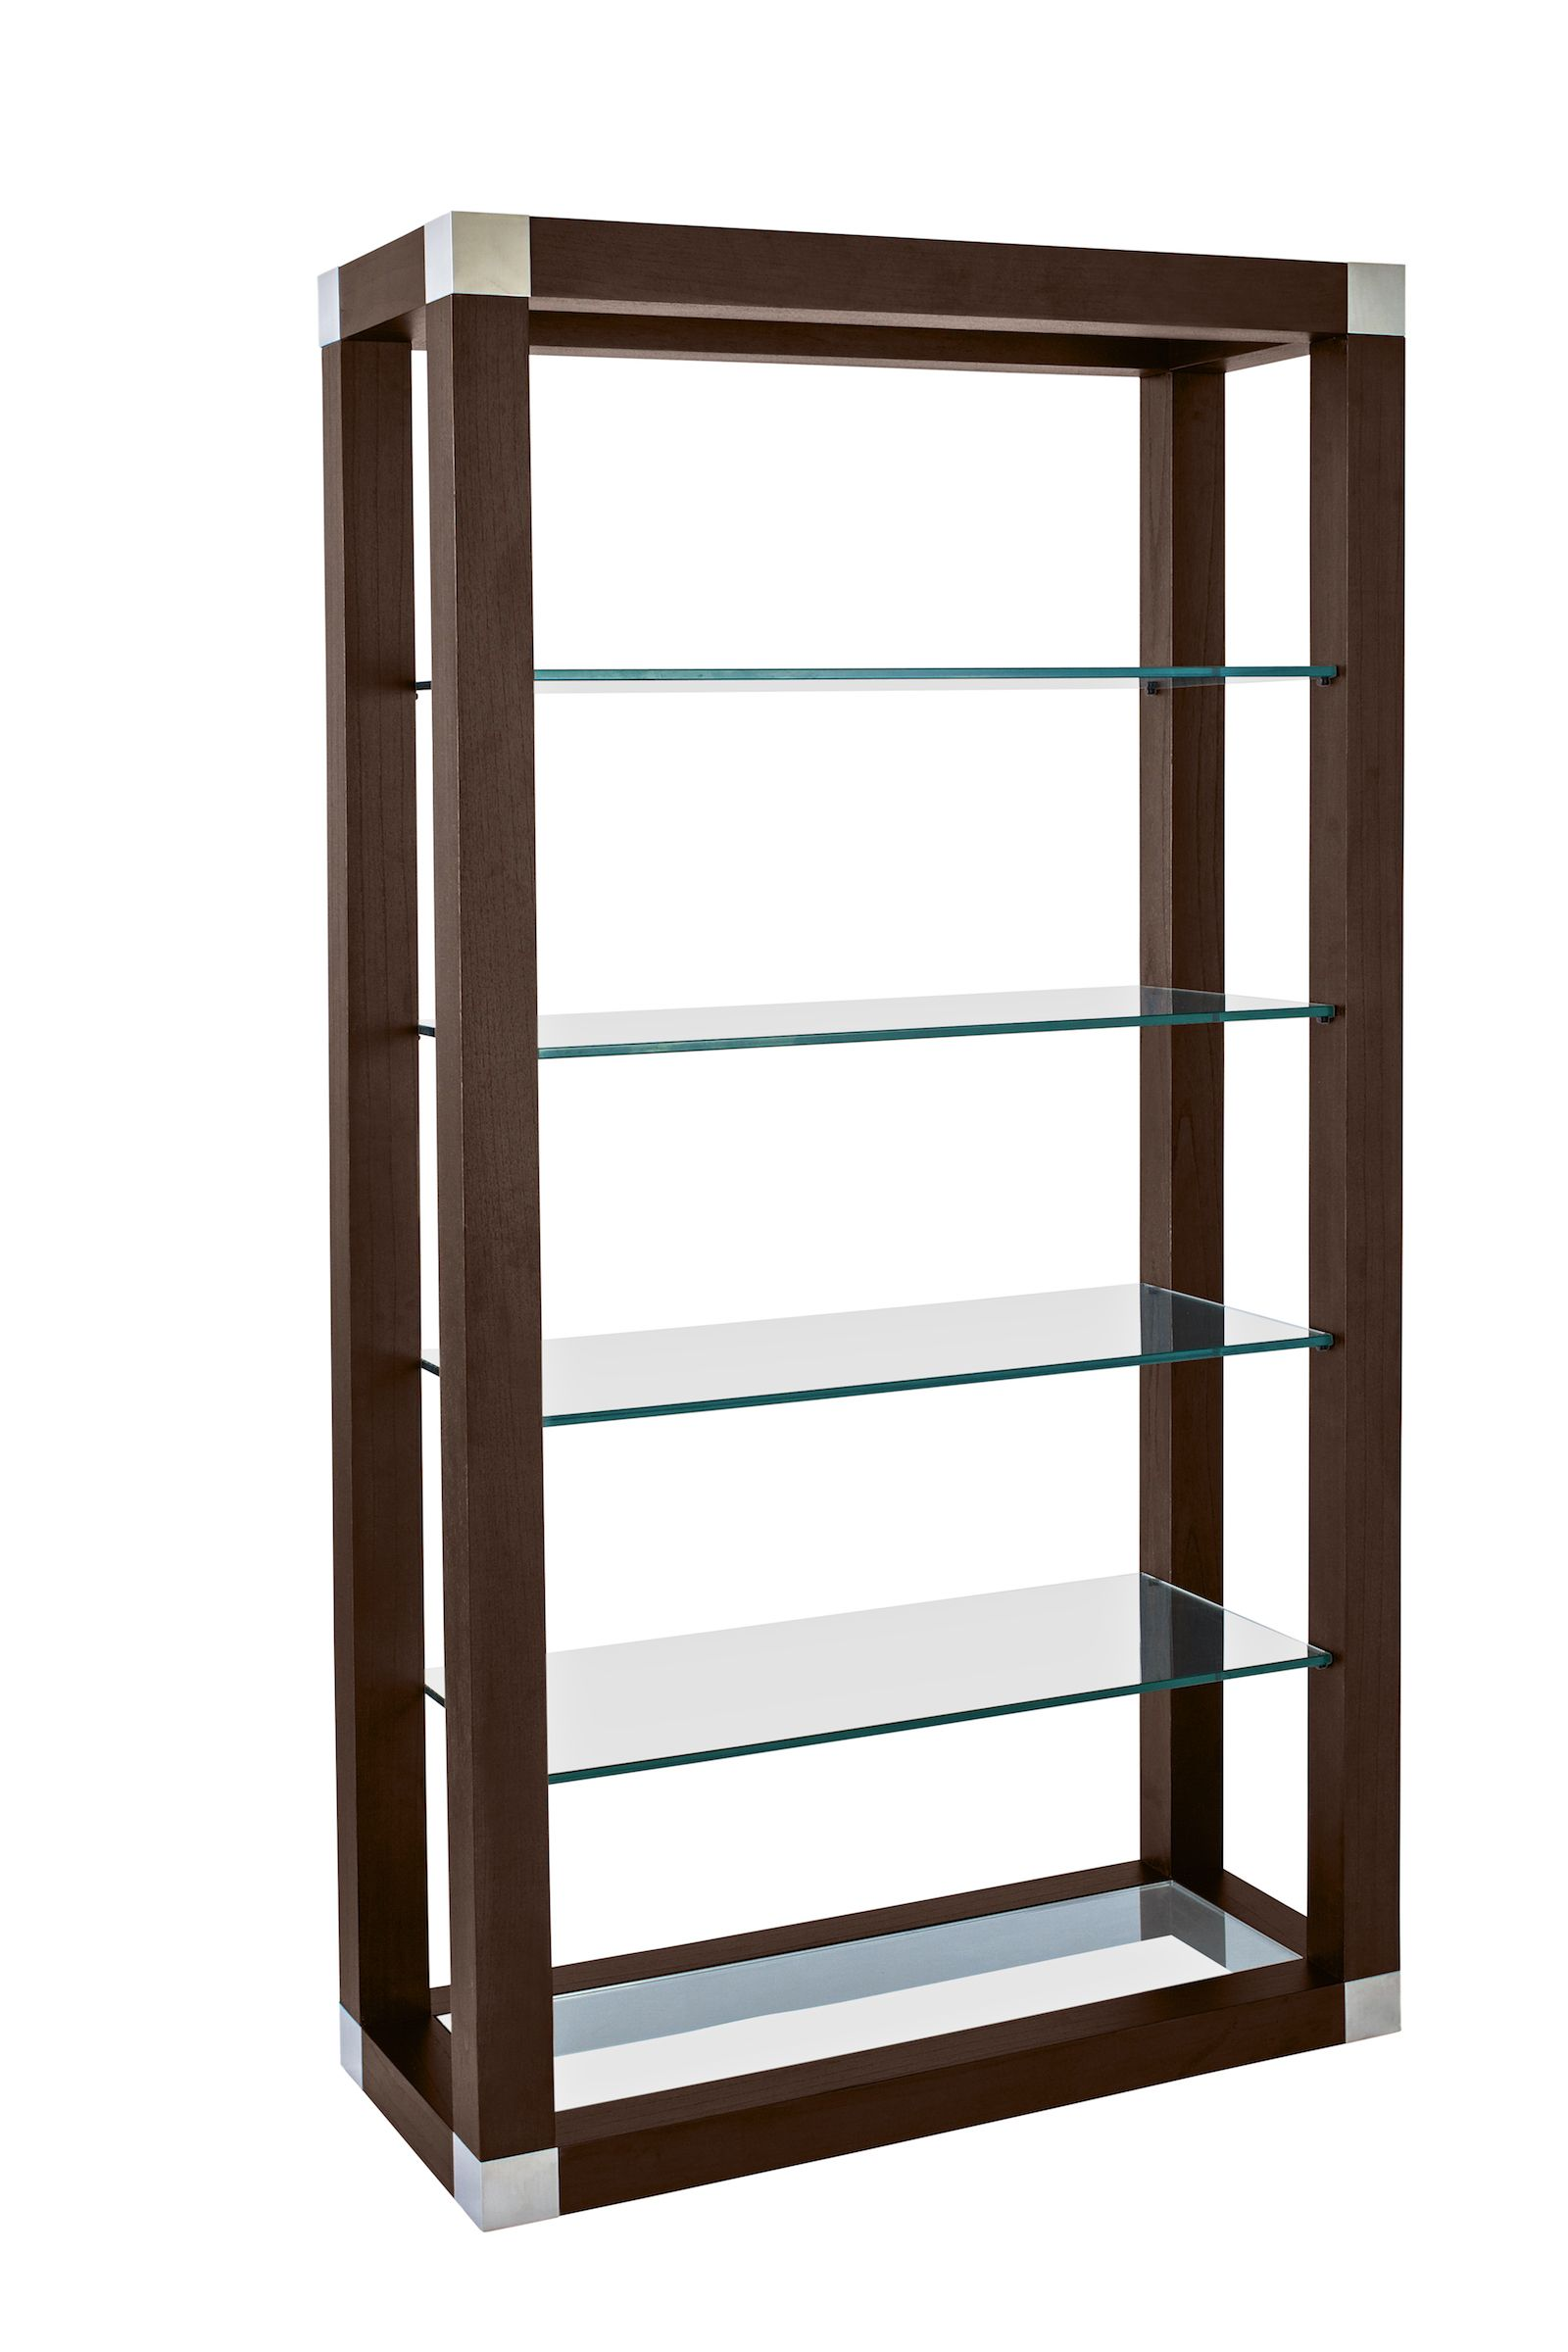 Calligraphy Bookcase Espresso On Kulin With Stainless Steel Accents And 1 2 Thick Clear Tempered Glass Shelving With Images Shelves Wall Shelves Glass Shelves